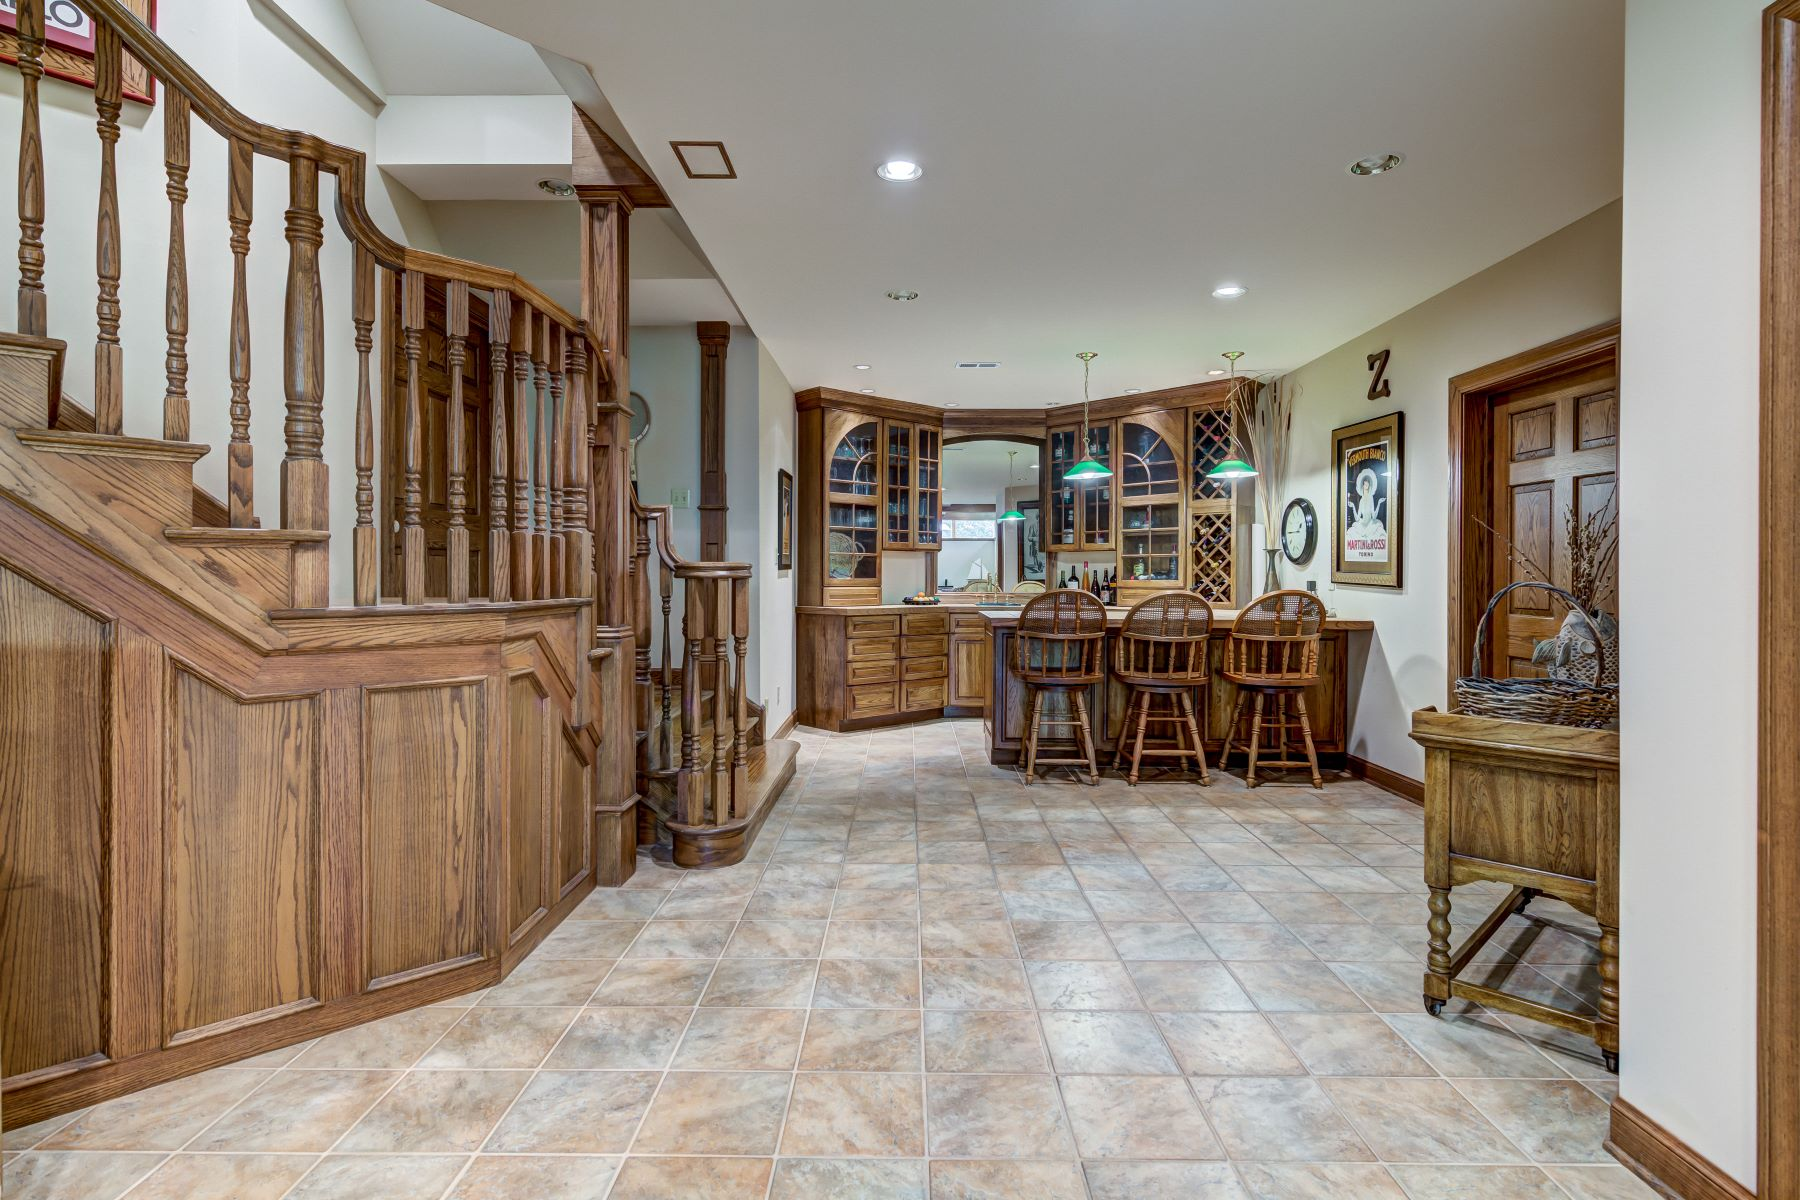 Additional photo for property listing at Exquisite Country Estate Nestled on Over 16 Lush Acres in Wildwood 2525 Ossenfort Road Glencoe, Missouri 63038 United States